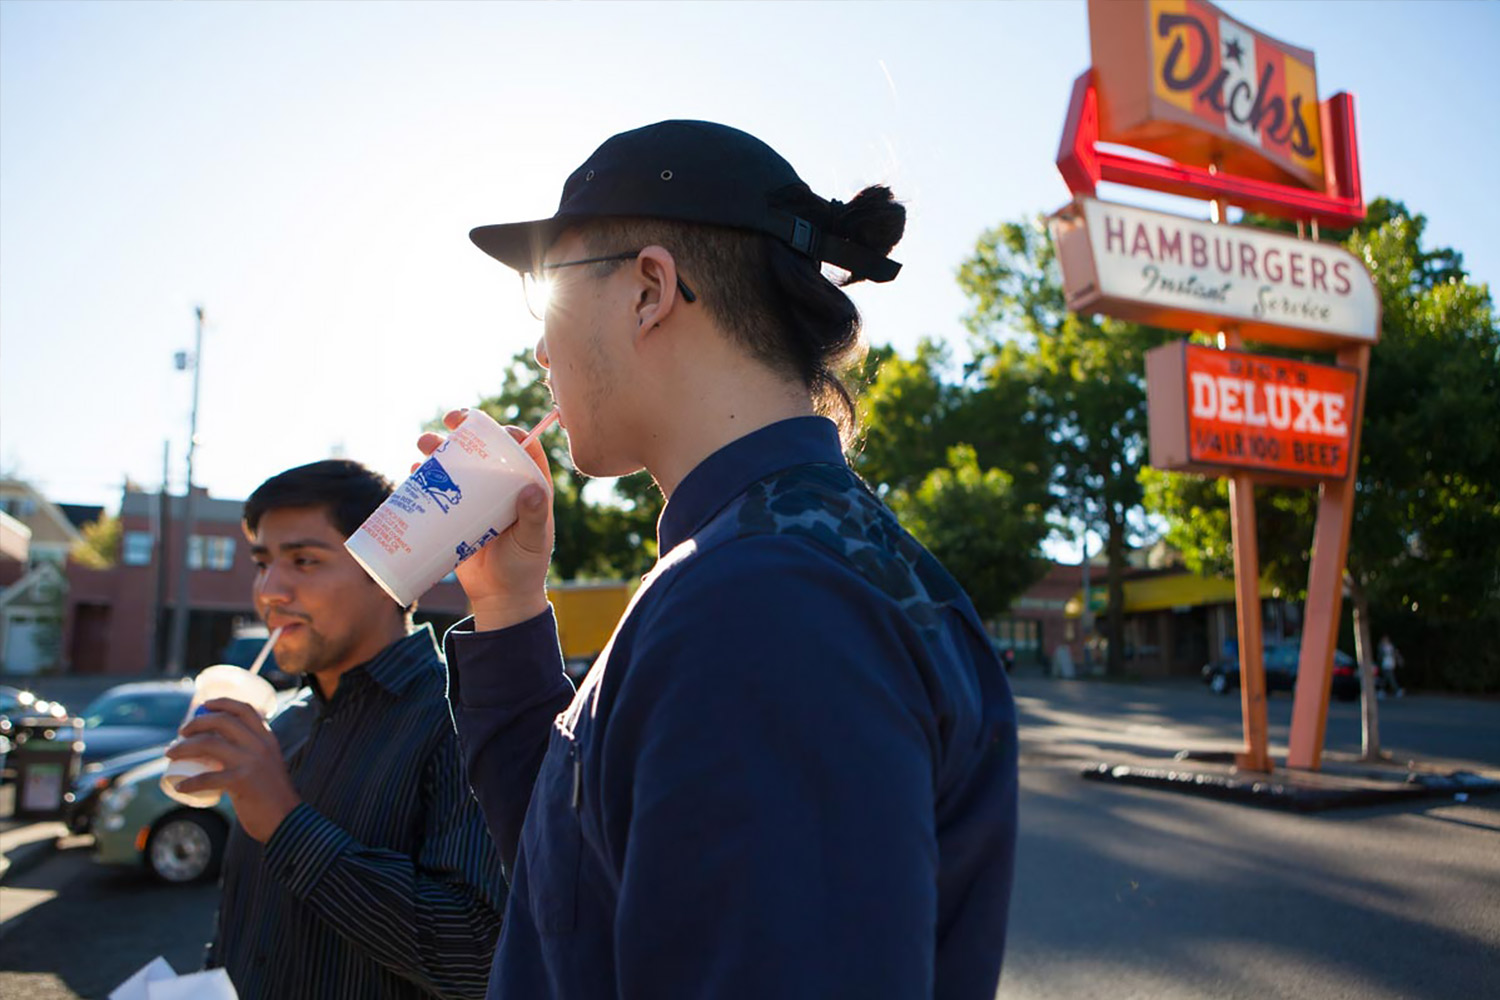 Students drinking milkshakes outside of Dick's Drive-In